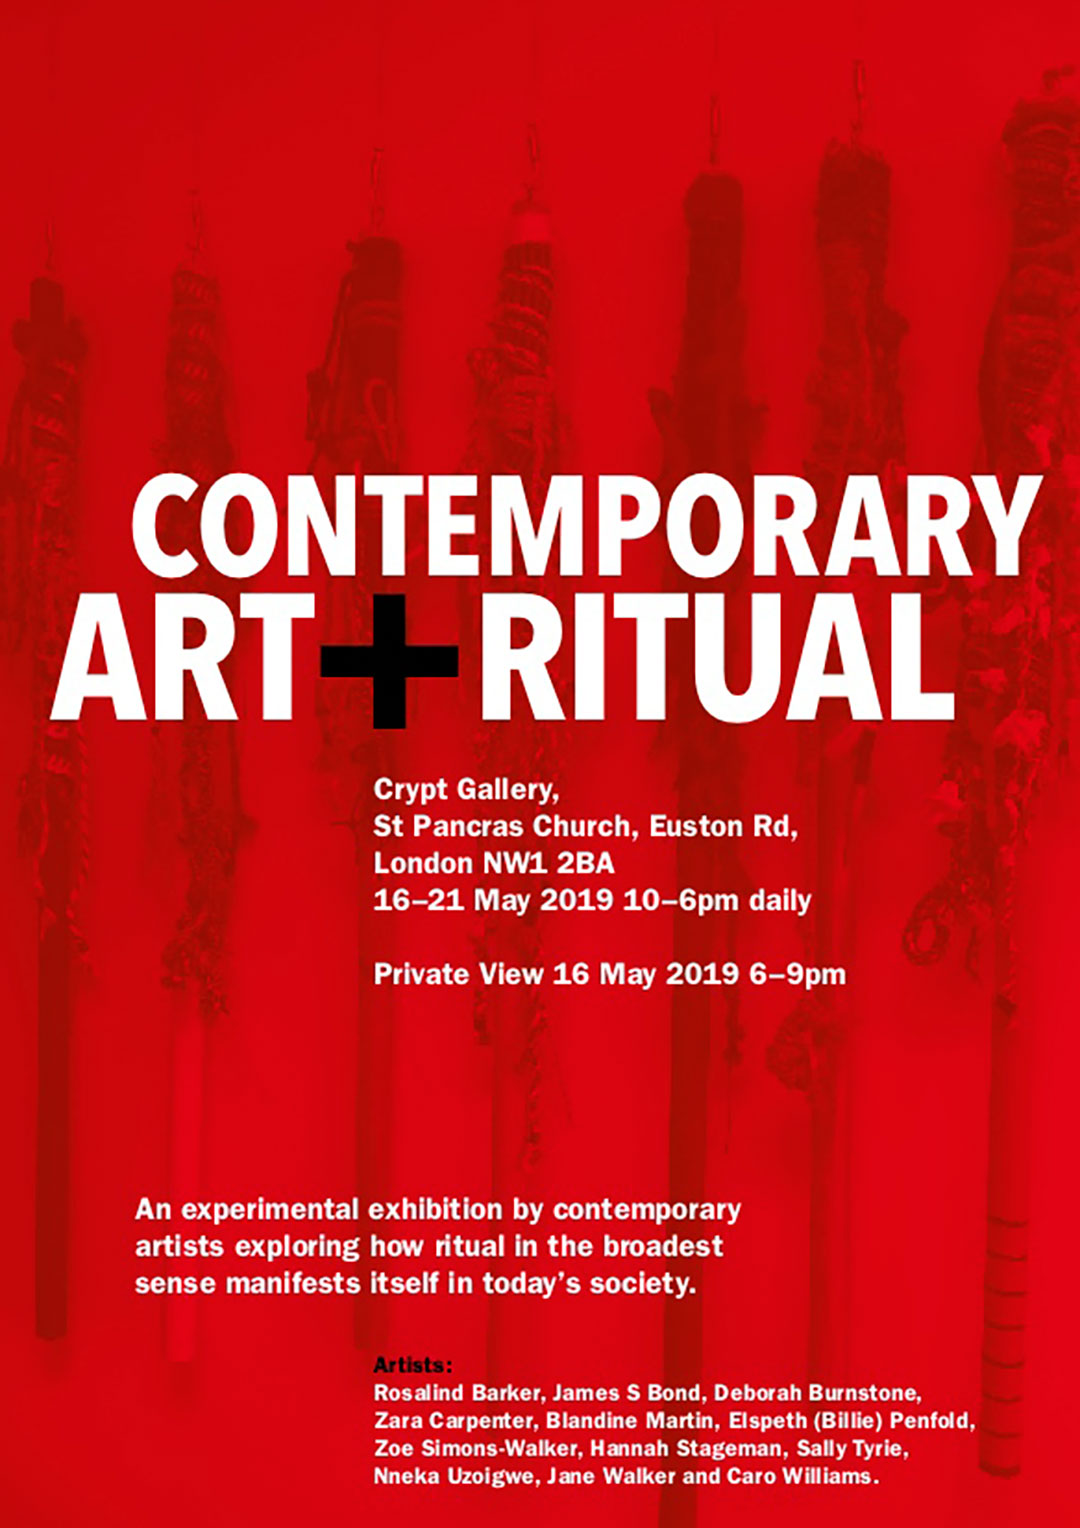 Artists : Rosalind Barker, James S Bond, Deborah Burnstone, Zara Carpenter, Blandine Martin, Elspeth (Billie) Penfold, Zoe Simons-Walker, Hannah Stageman, Sally Tyrie, Nneka Uzoigwe, Jane Walker and Caro Williams   More info